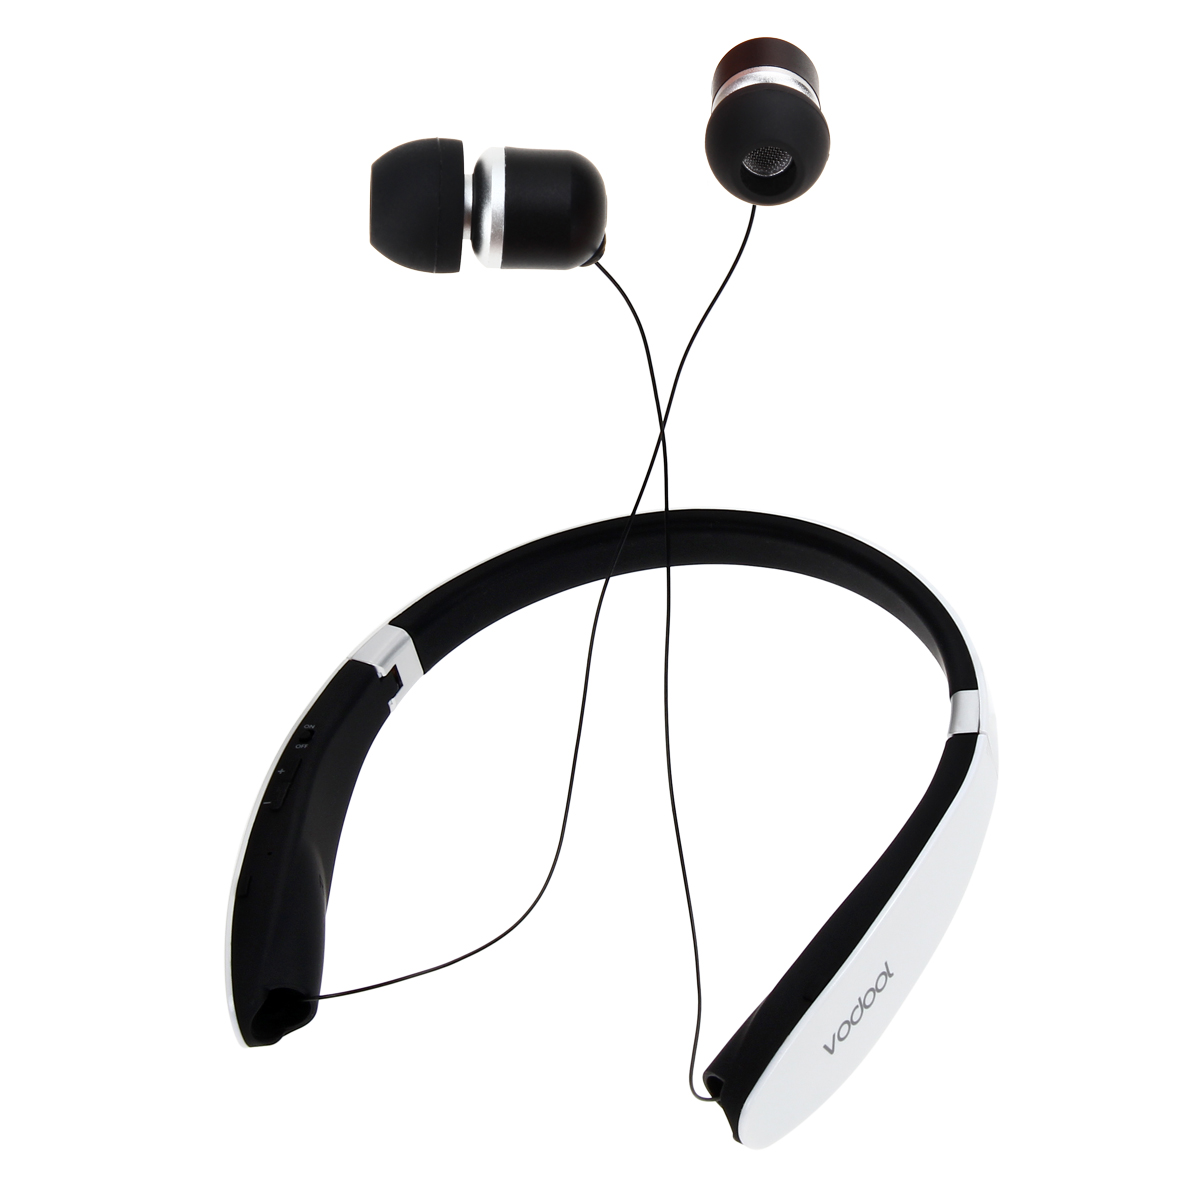 Foldable Wireless Bluetooth Stereo Earphone Auriculares Extensible Earpiece Cable Handsfree Call Headset with Microphone <br>